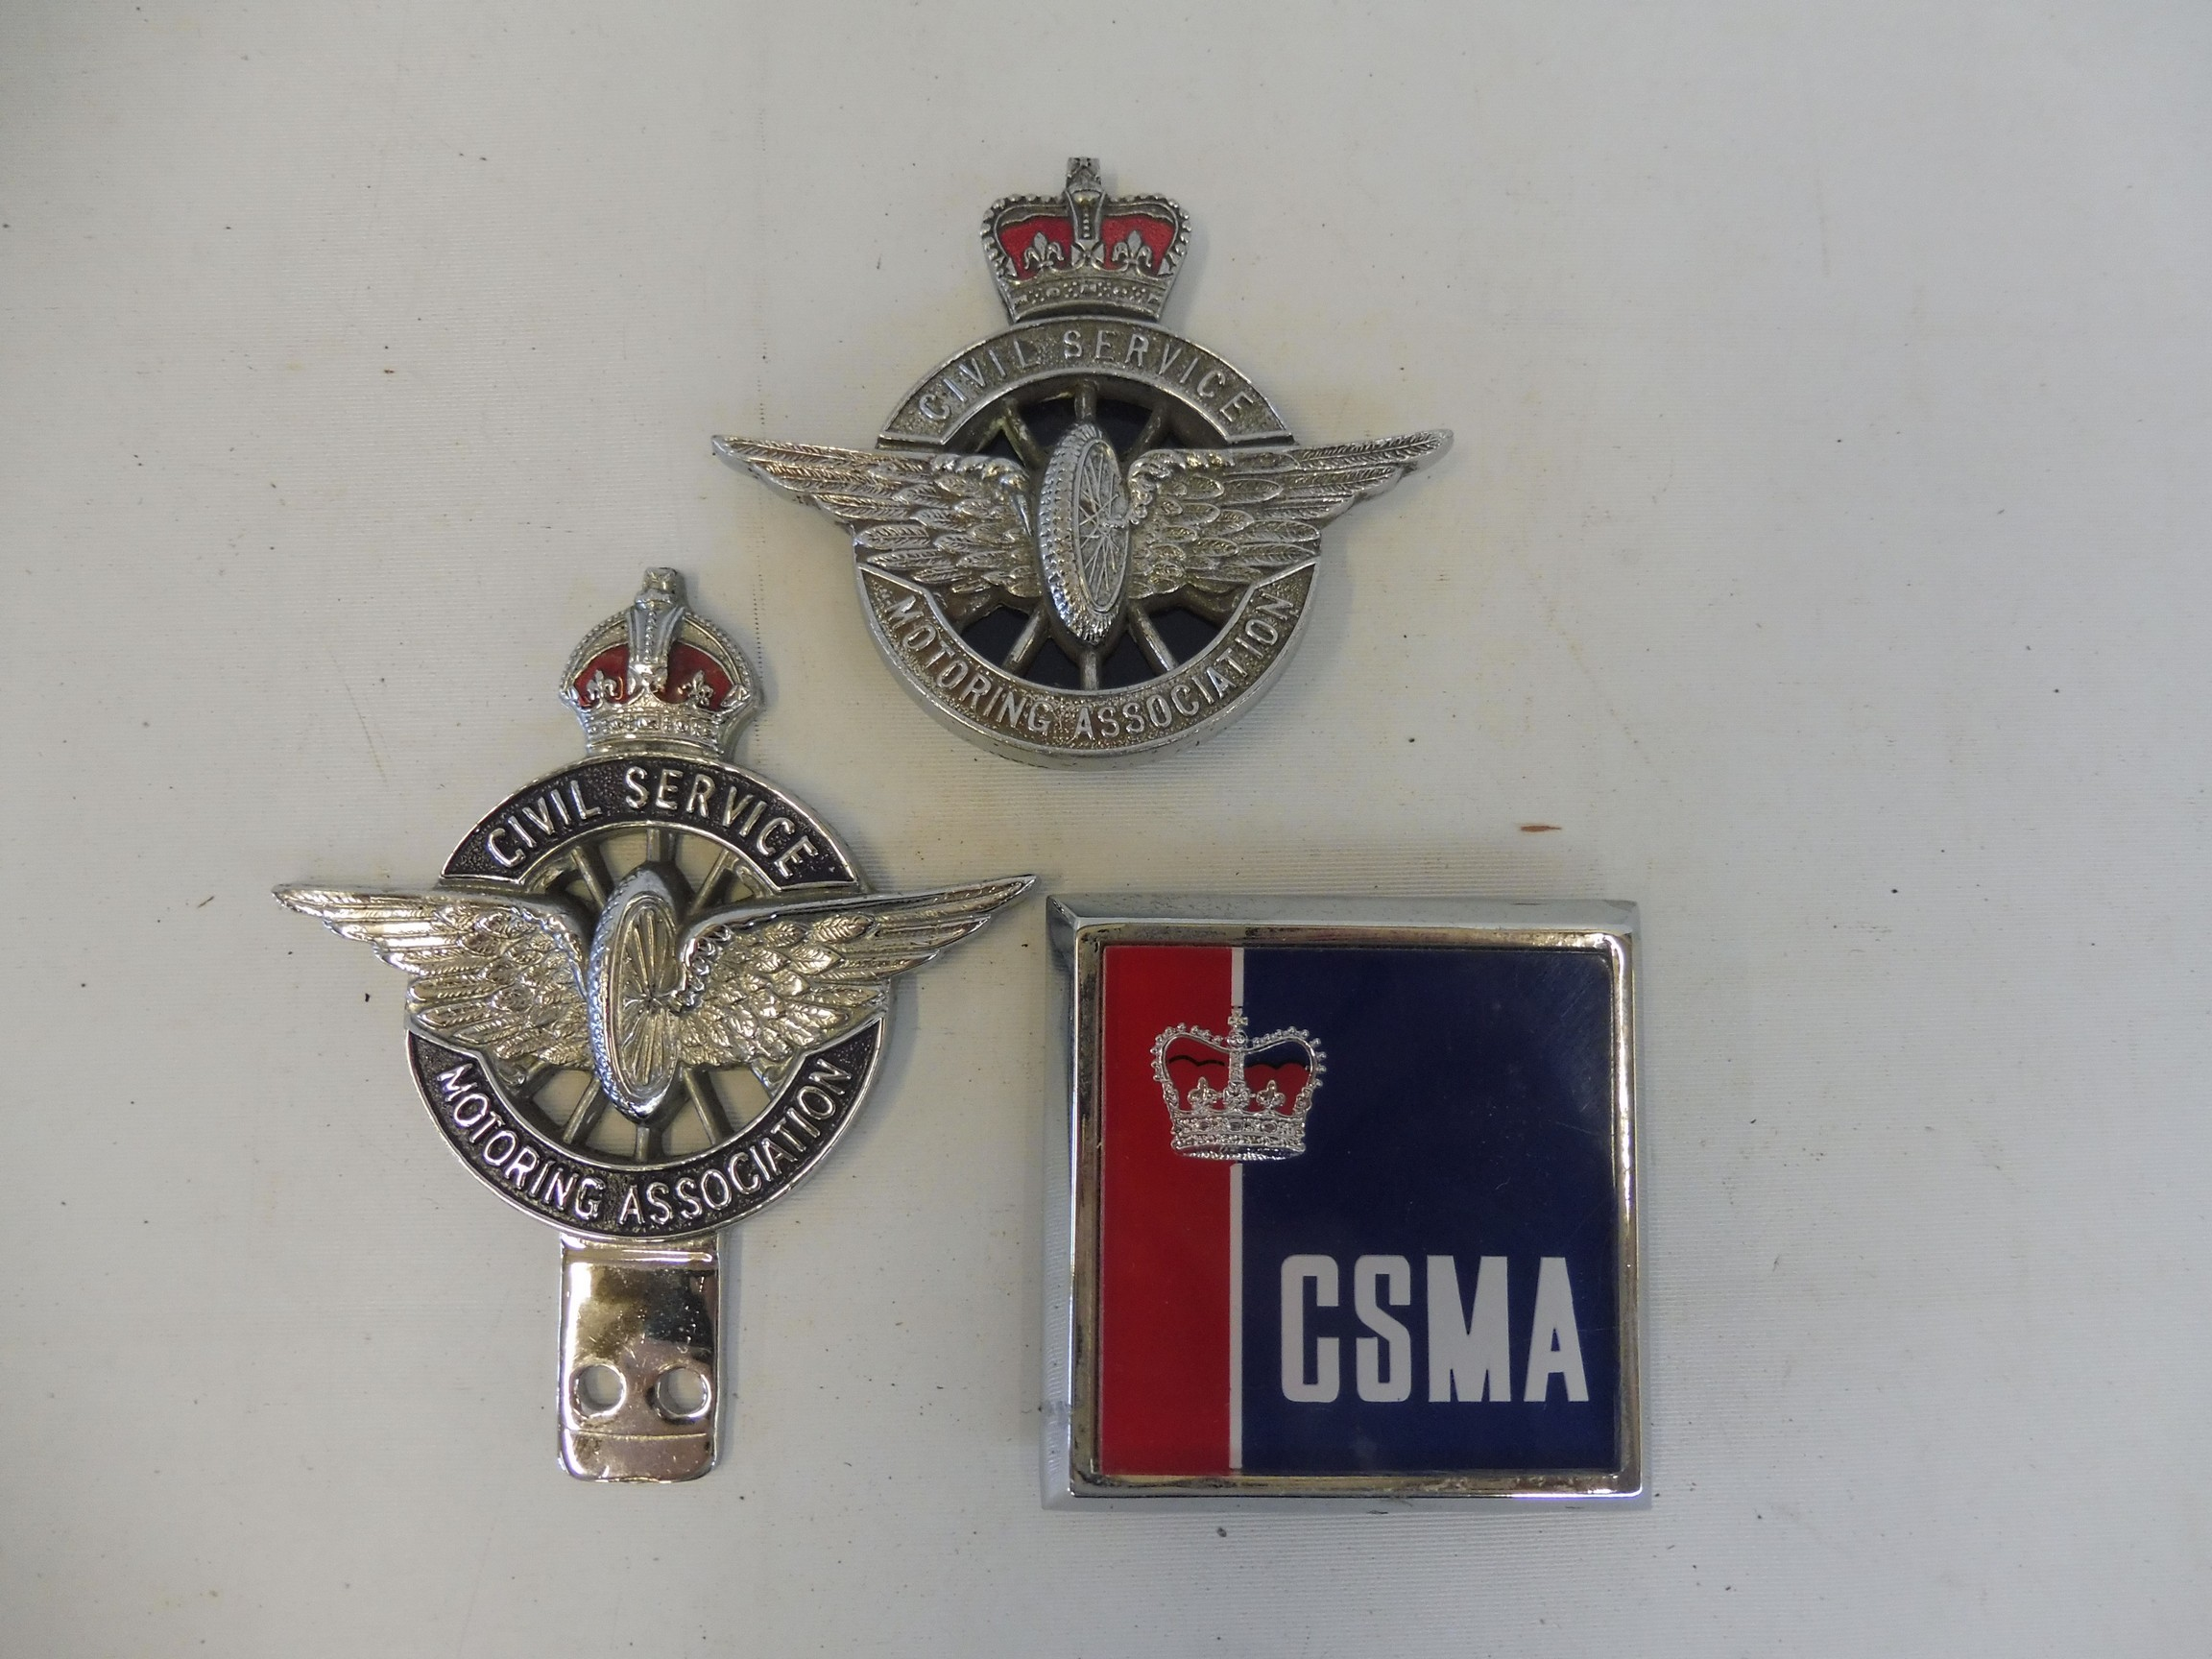 A Civil Service Motoring Association Series type 3 car badge, circa 1930s, chrome plated brass and